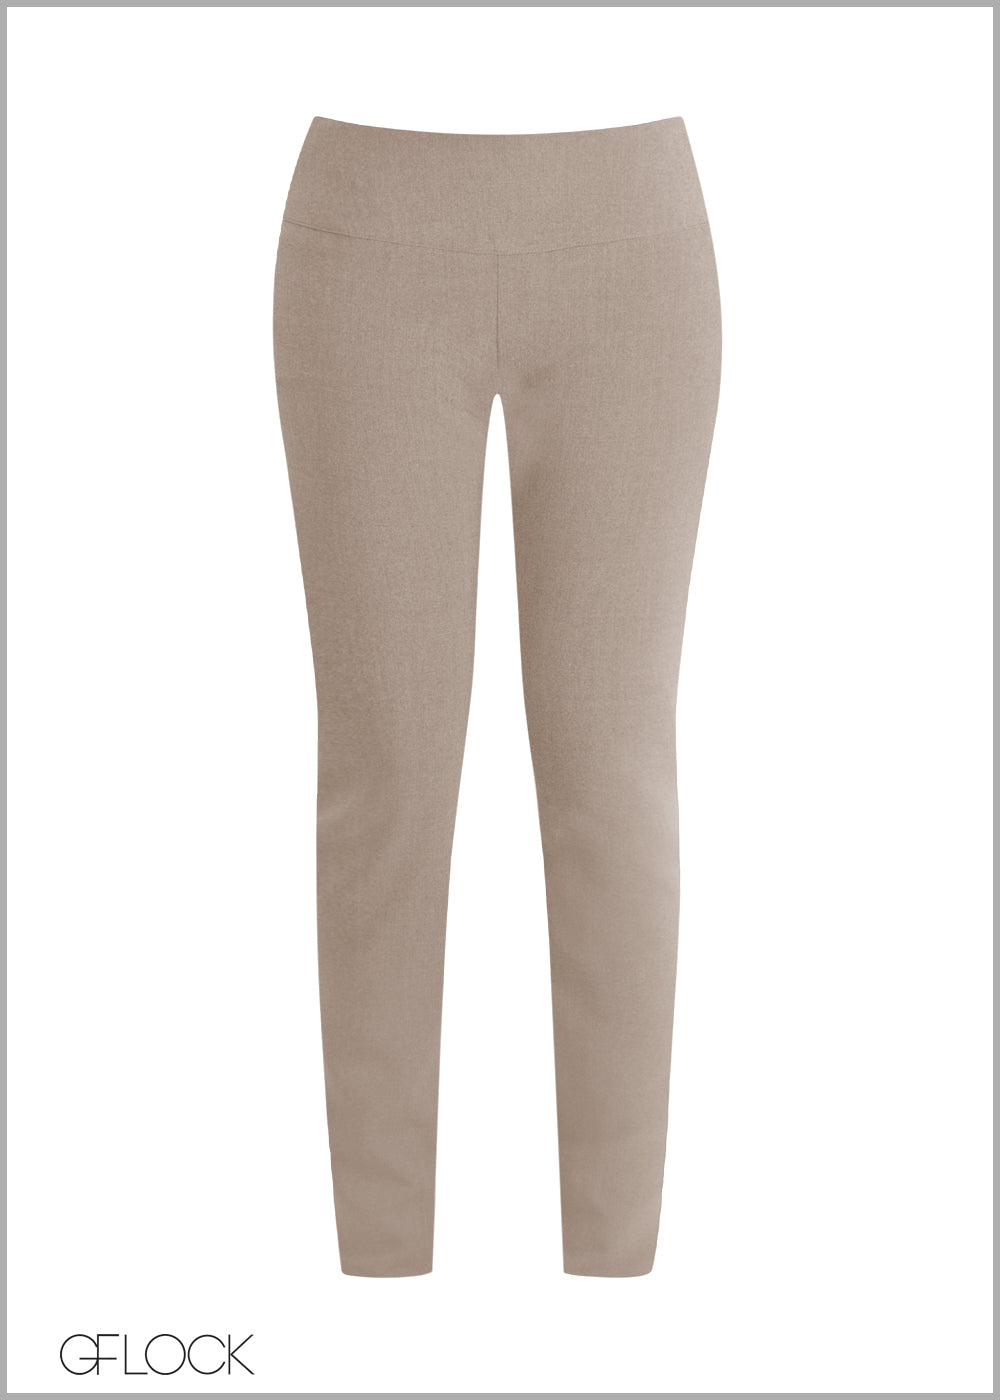 High Waist Work Wear Pant - GFLOCK.LK